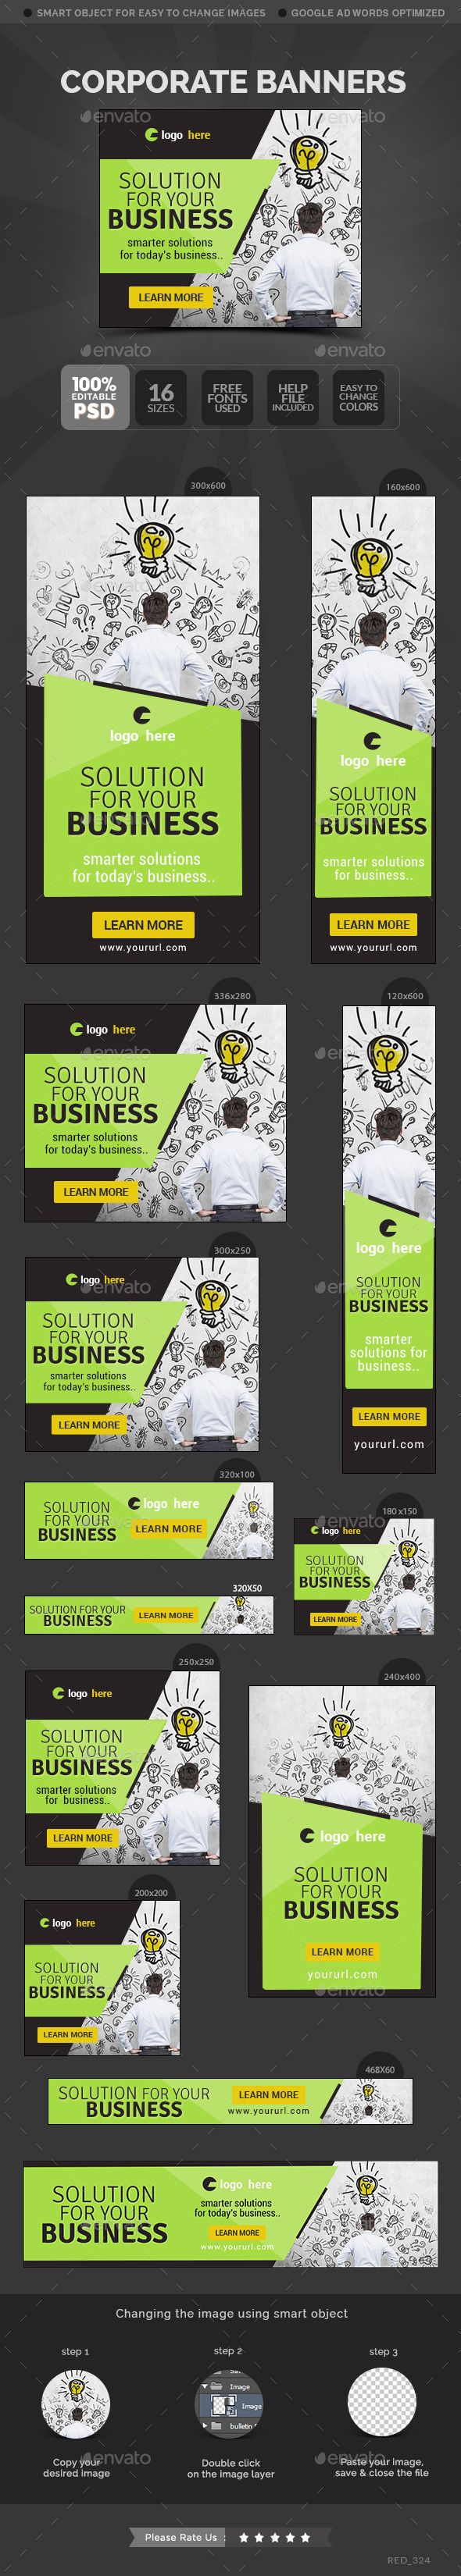 Corporate Banners Template #design #web Download…